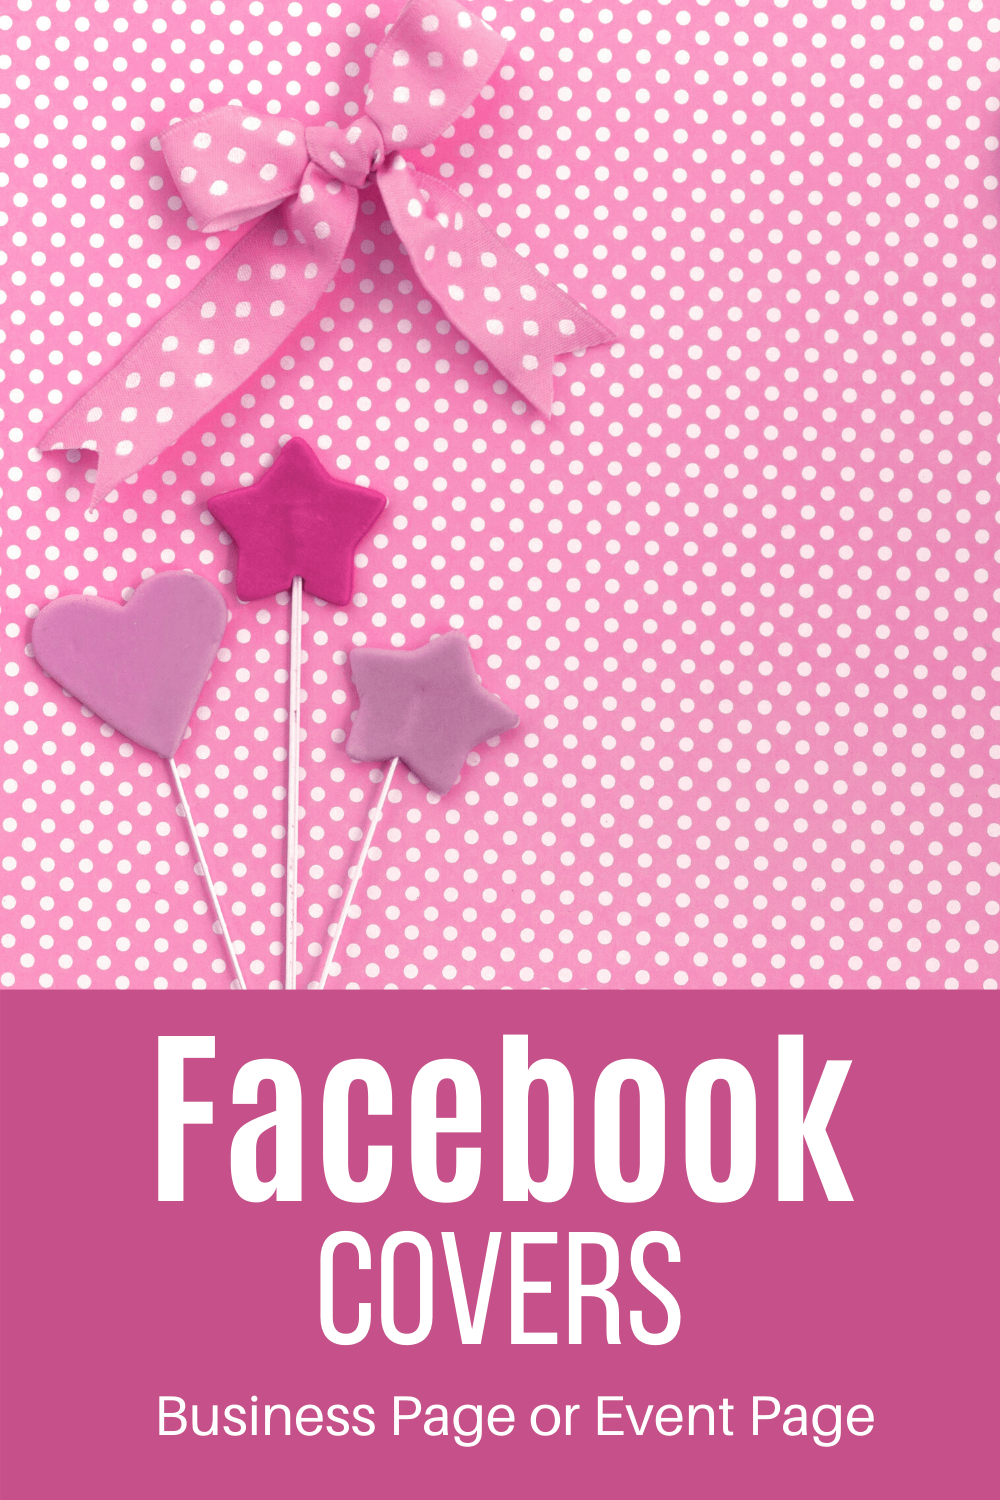 Pink like a baby shower and the words facebook covers